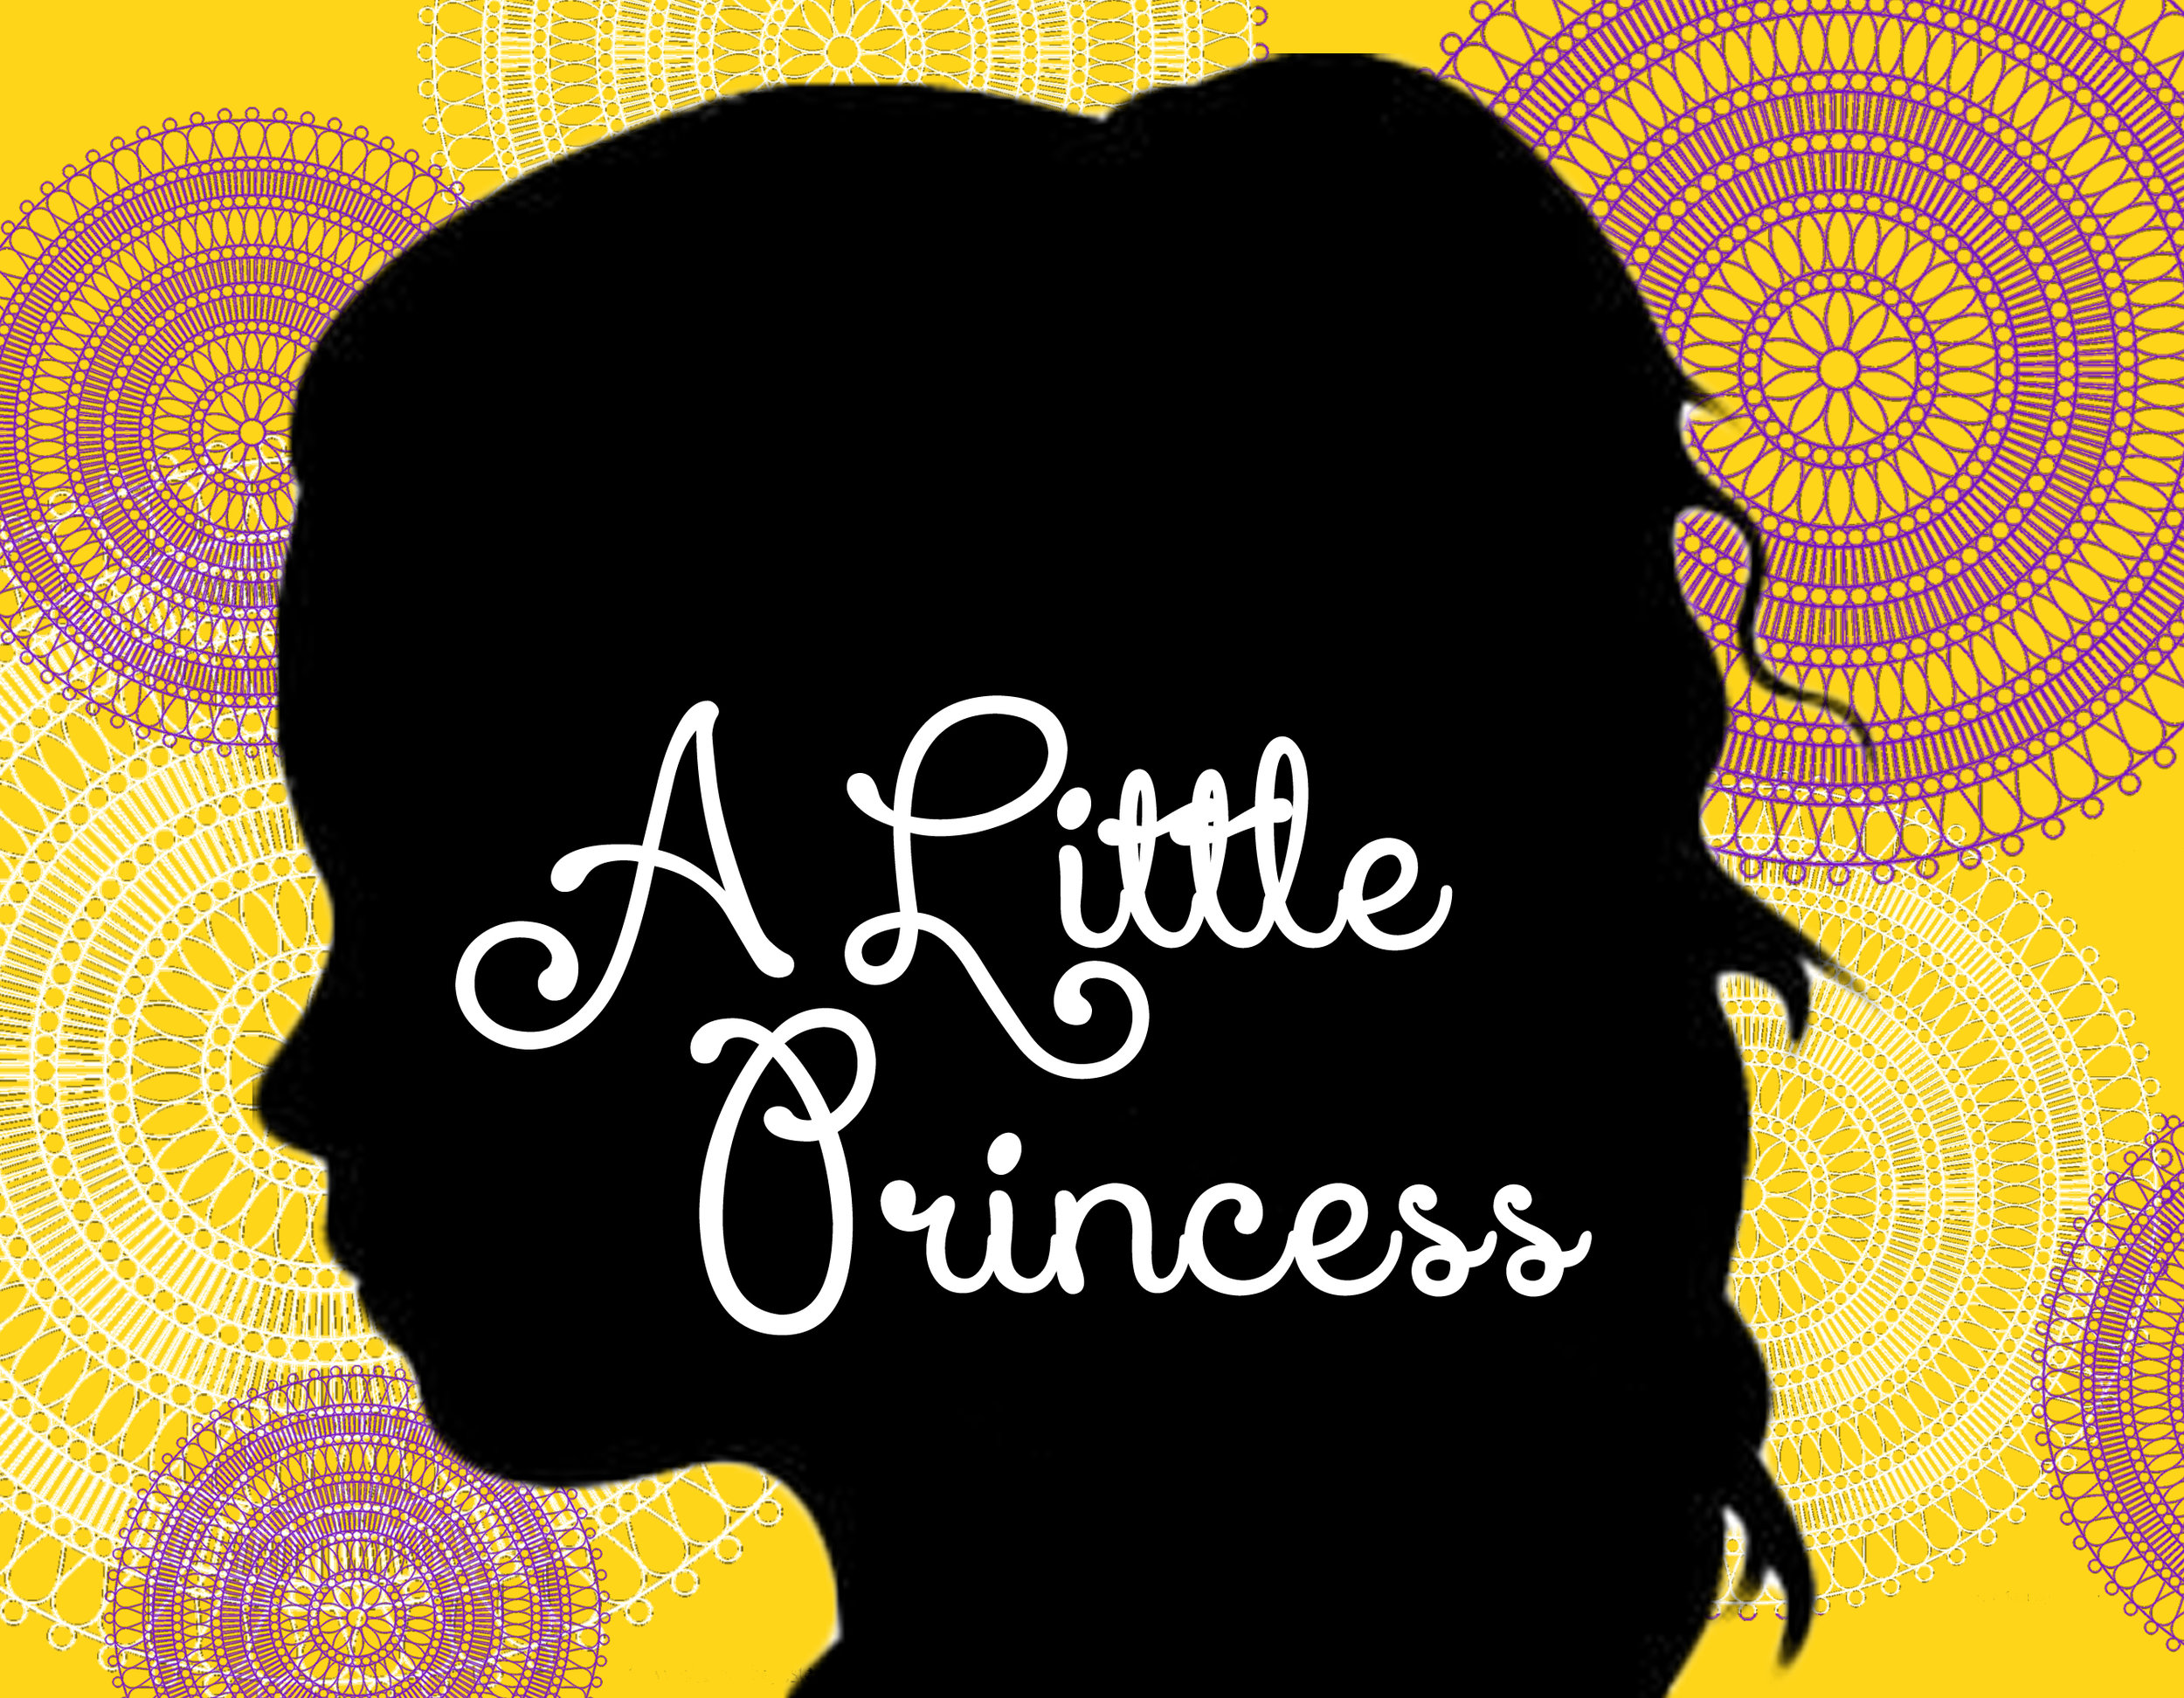 little princess logo.jpg